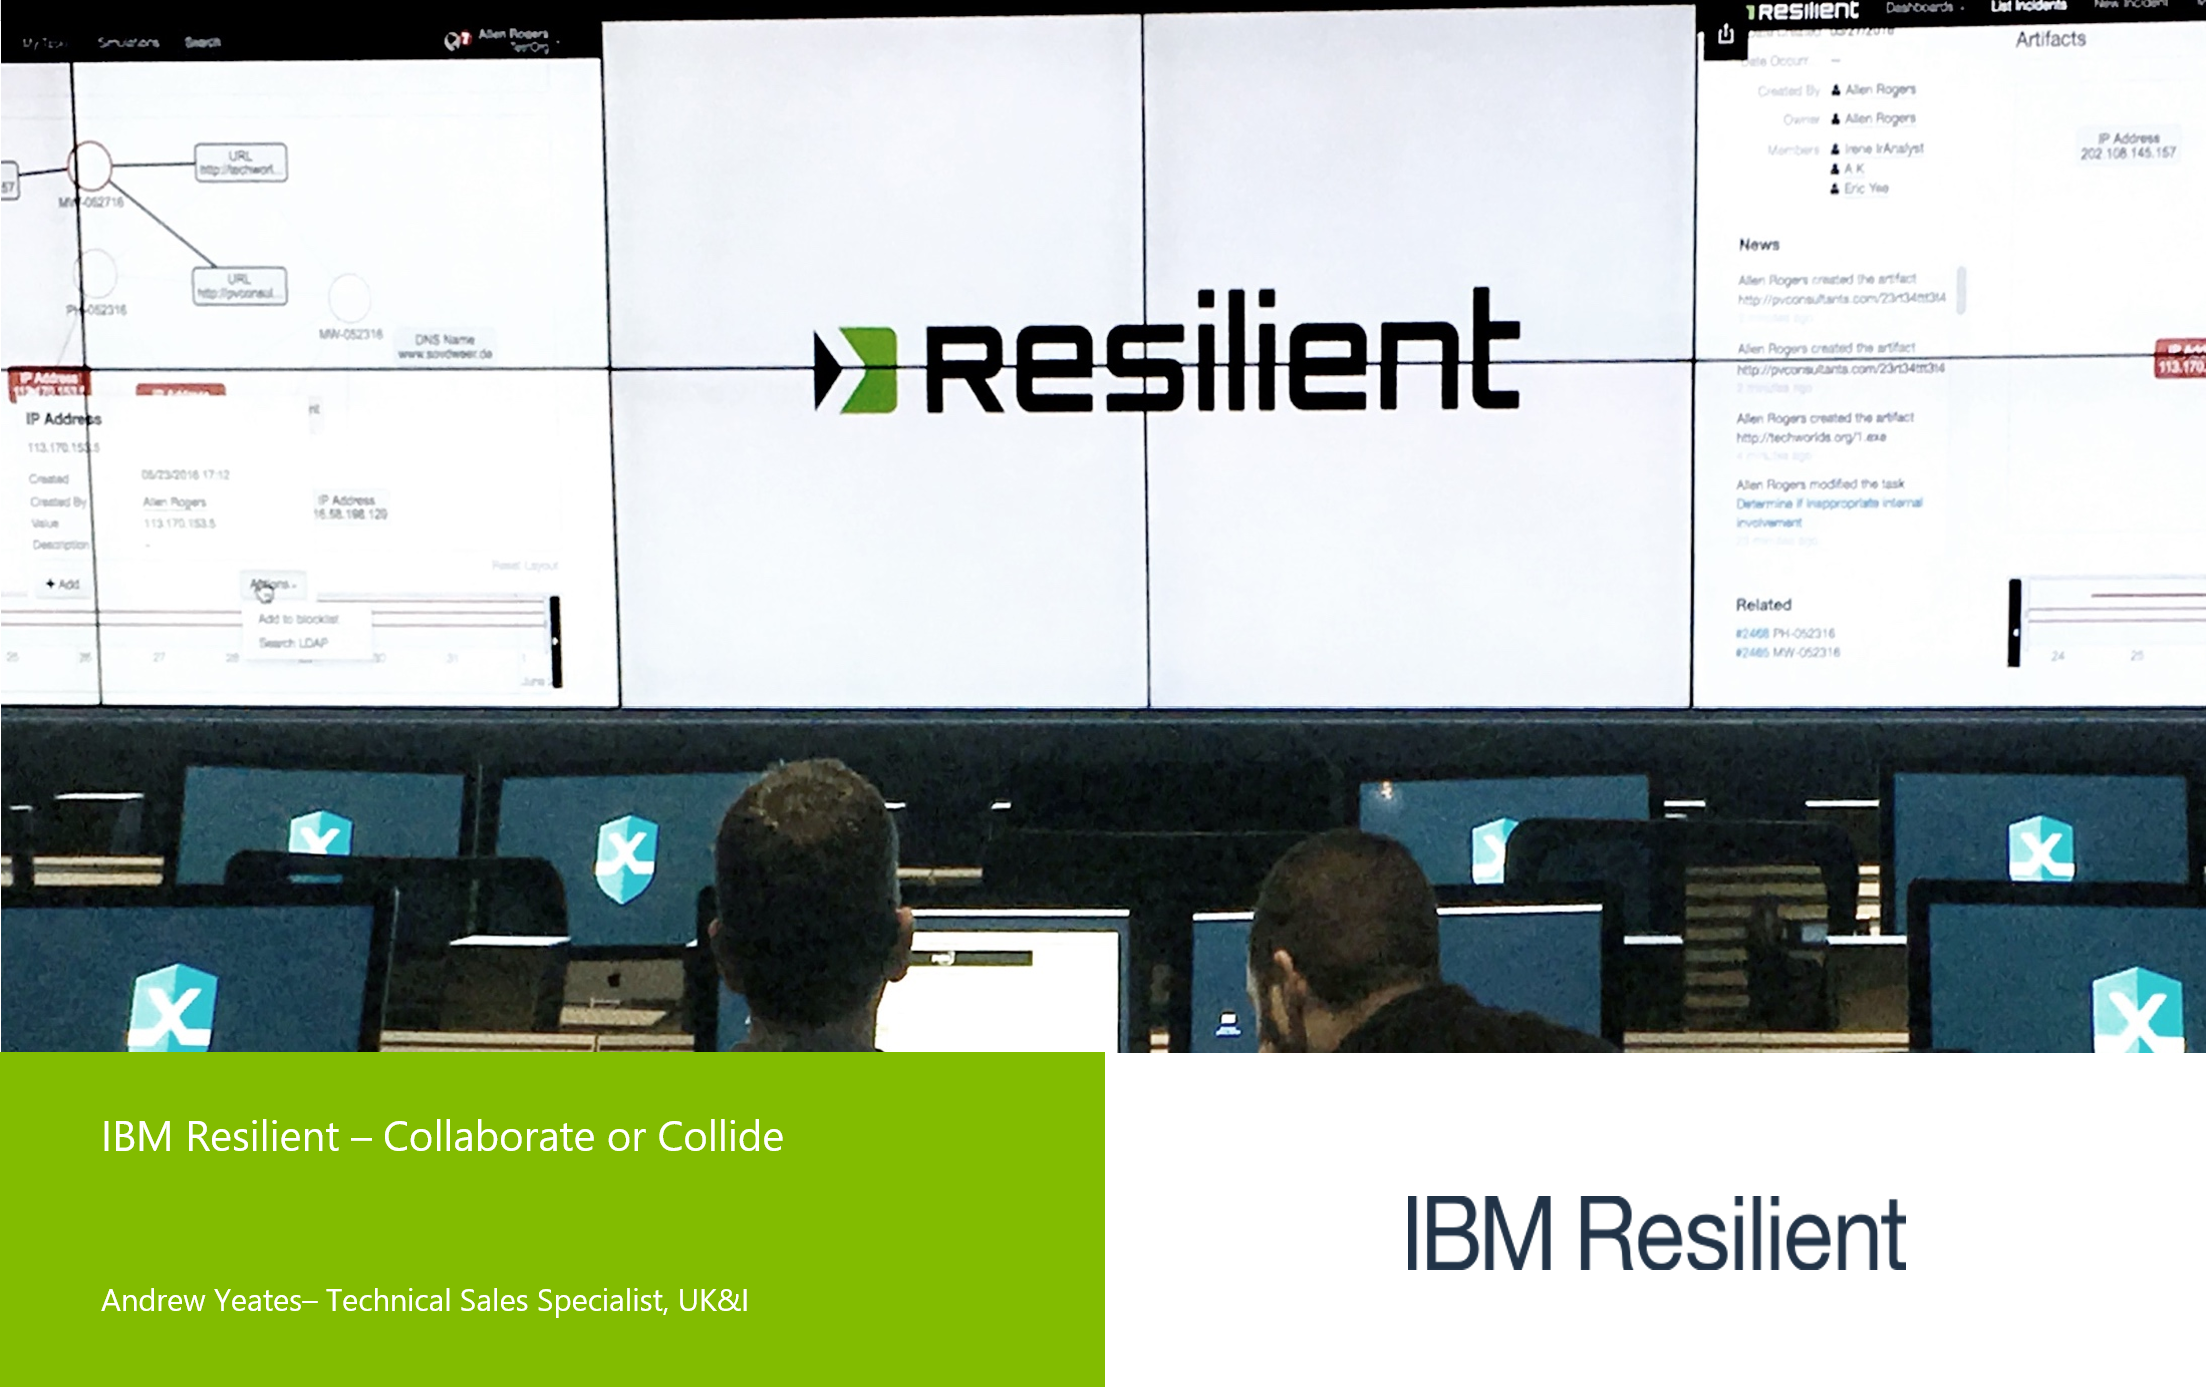 IBM Resilient Collaborate or Collide by Andrew Yea